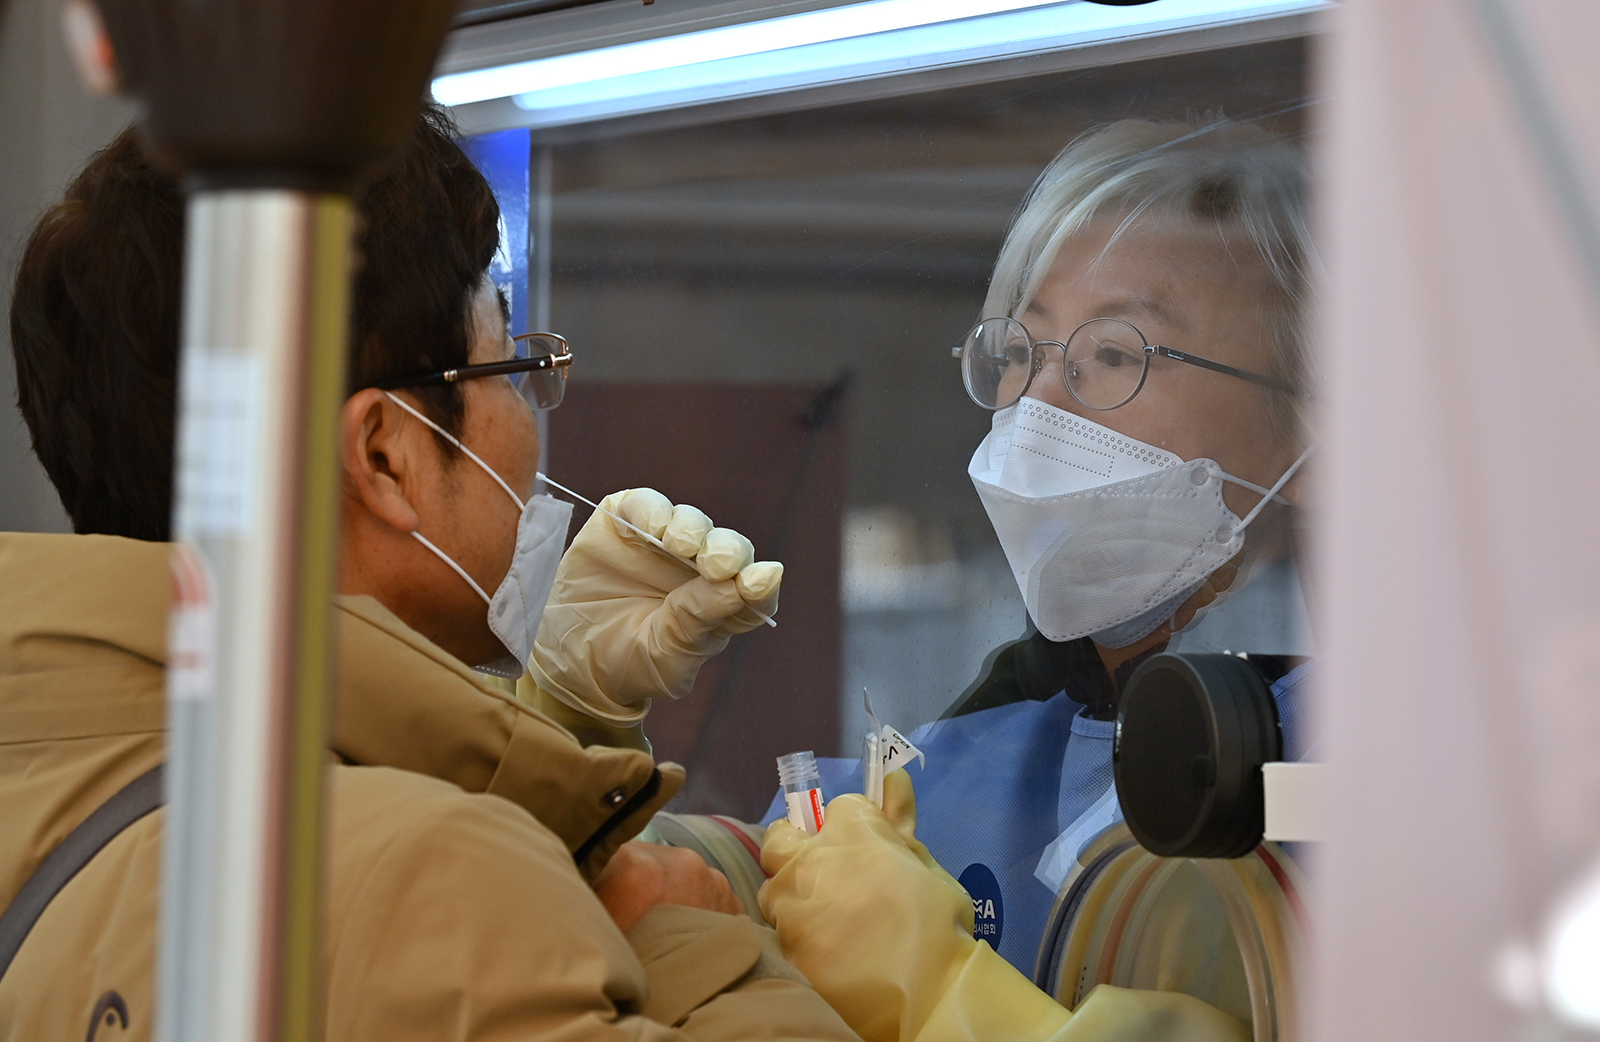 A medical staff member takes a swab from a visitor to test for Covid-19 in Seoul, South Korea, on December 28, 2020.